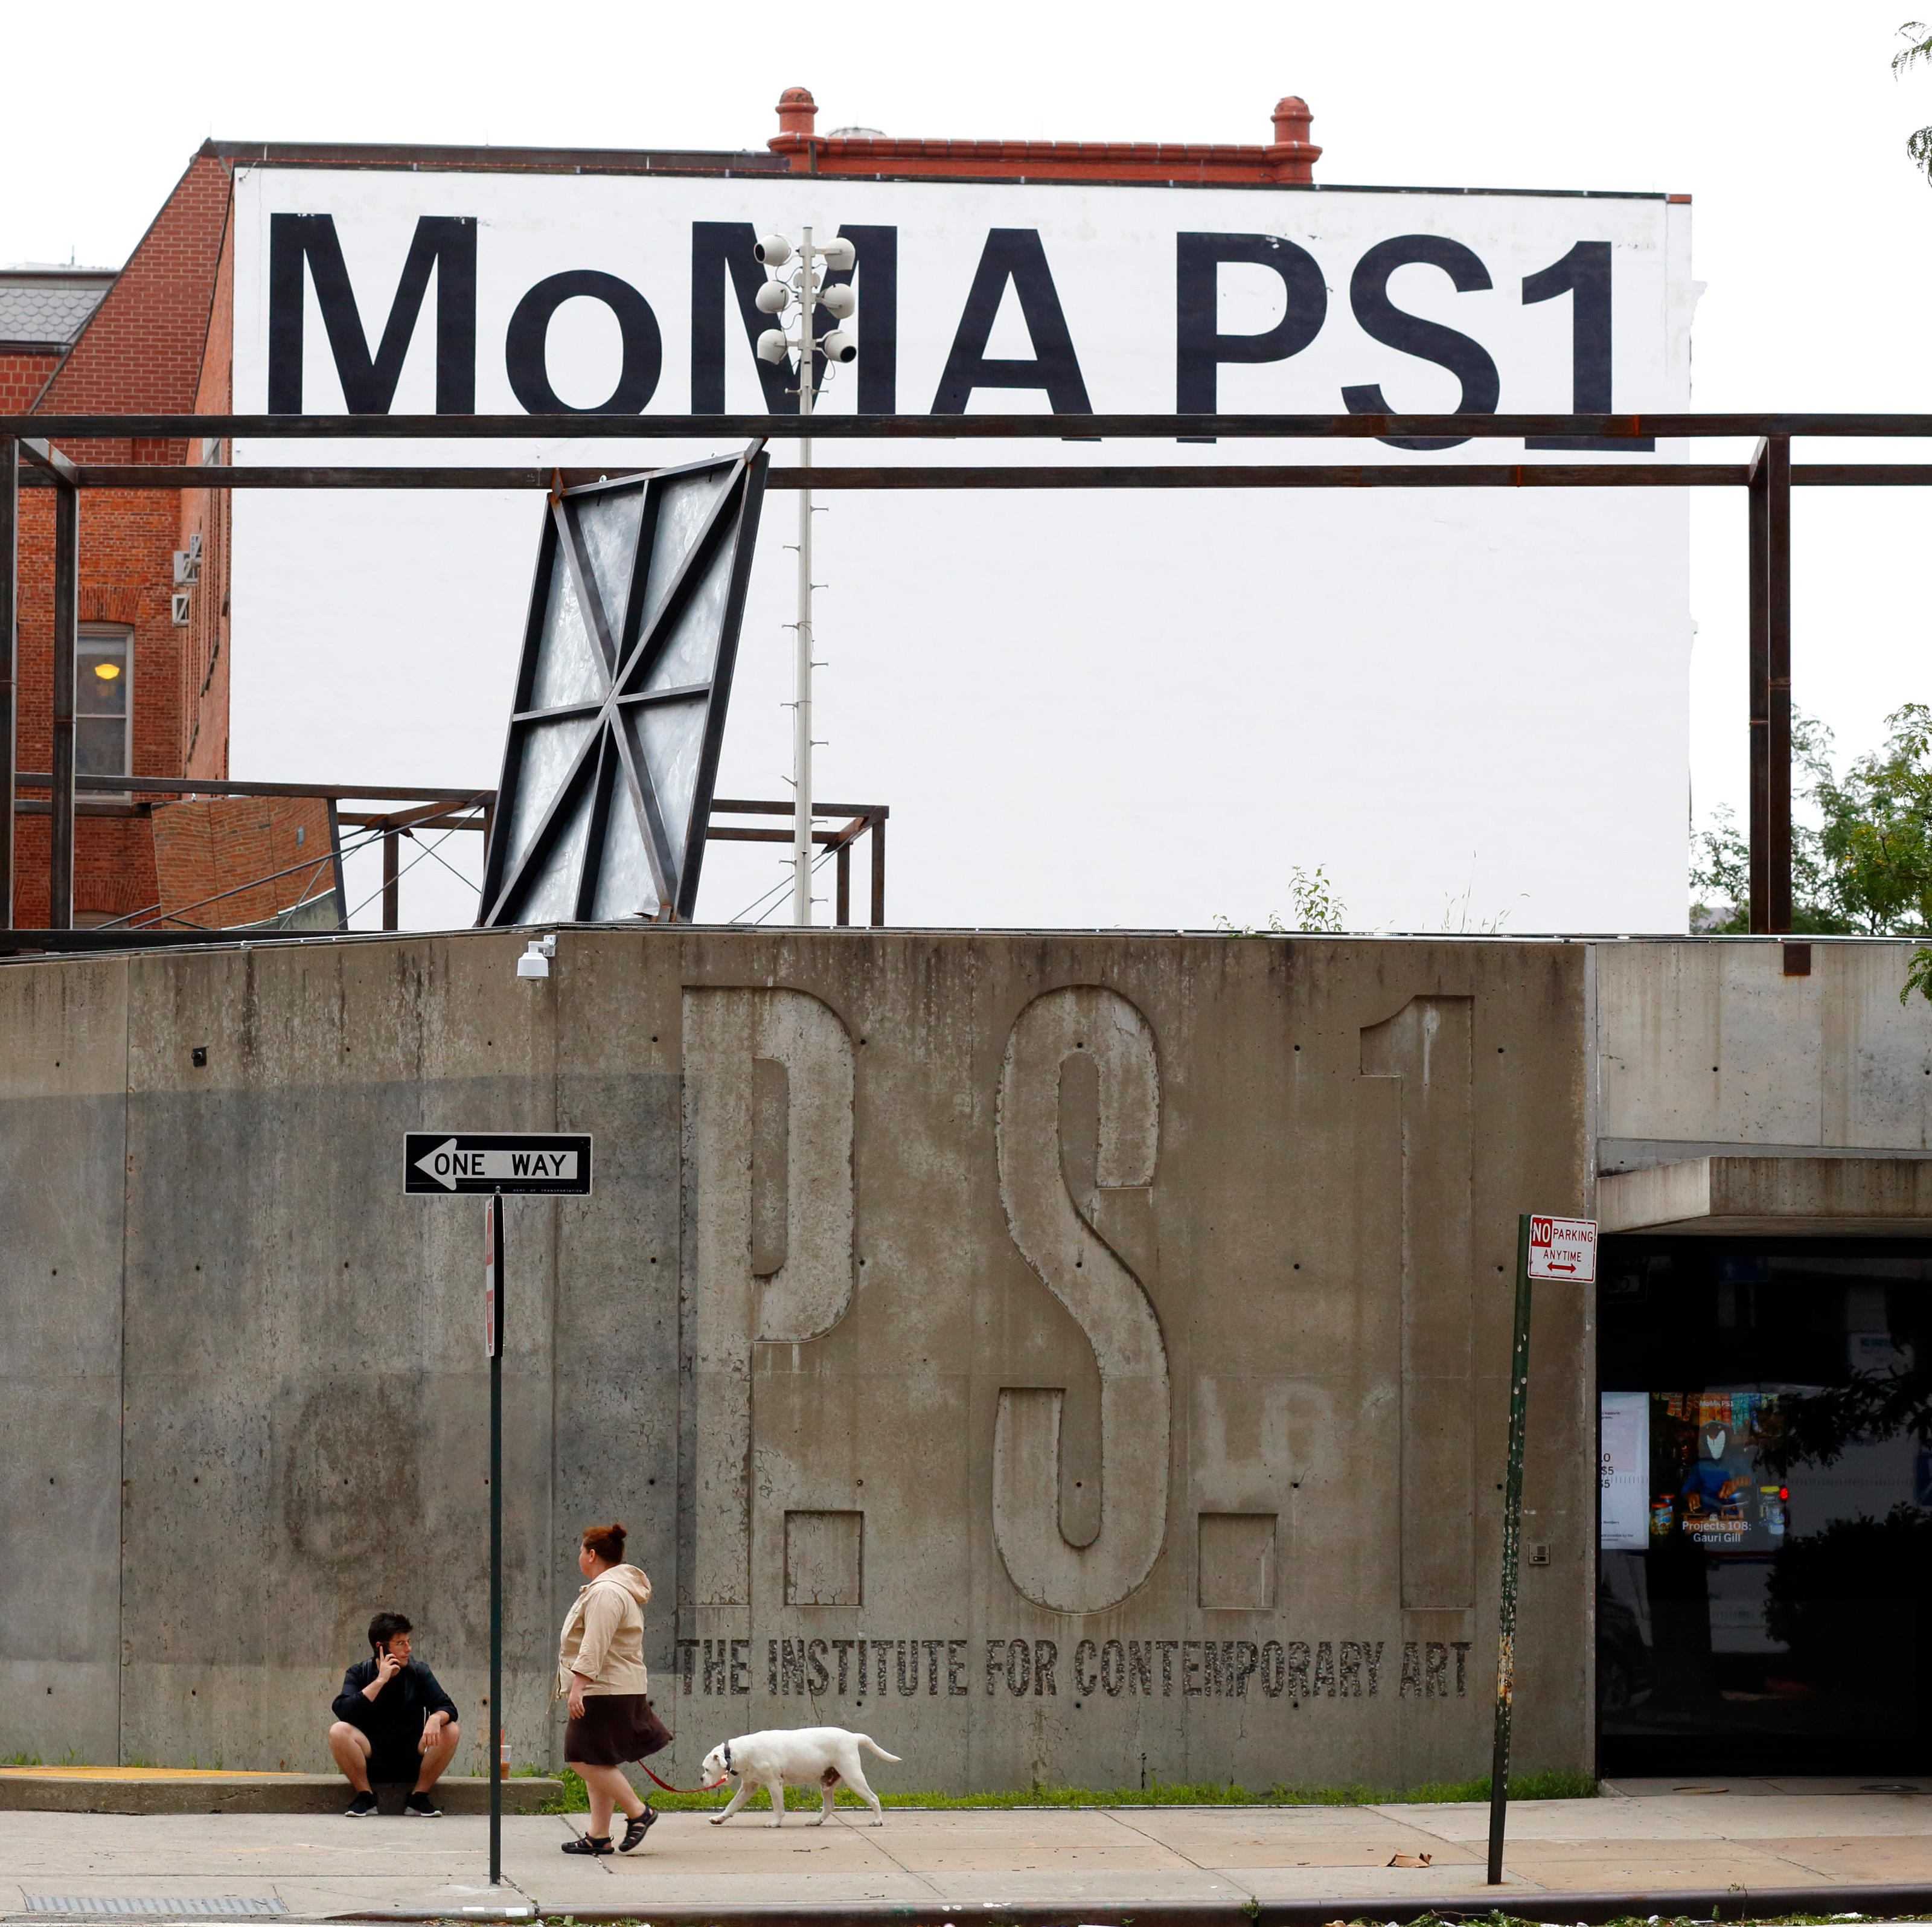 MoMA PS1. Photo: Robert K. Chin - Storefronts / Alamy Stock.